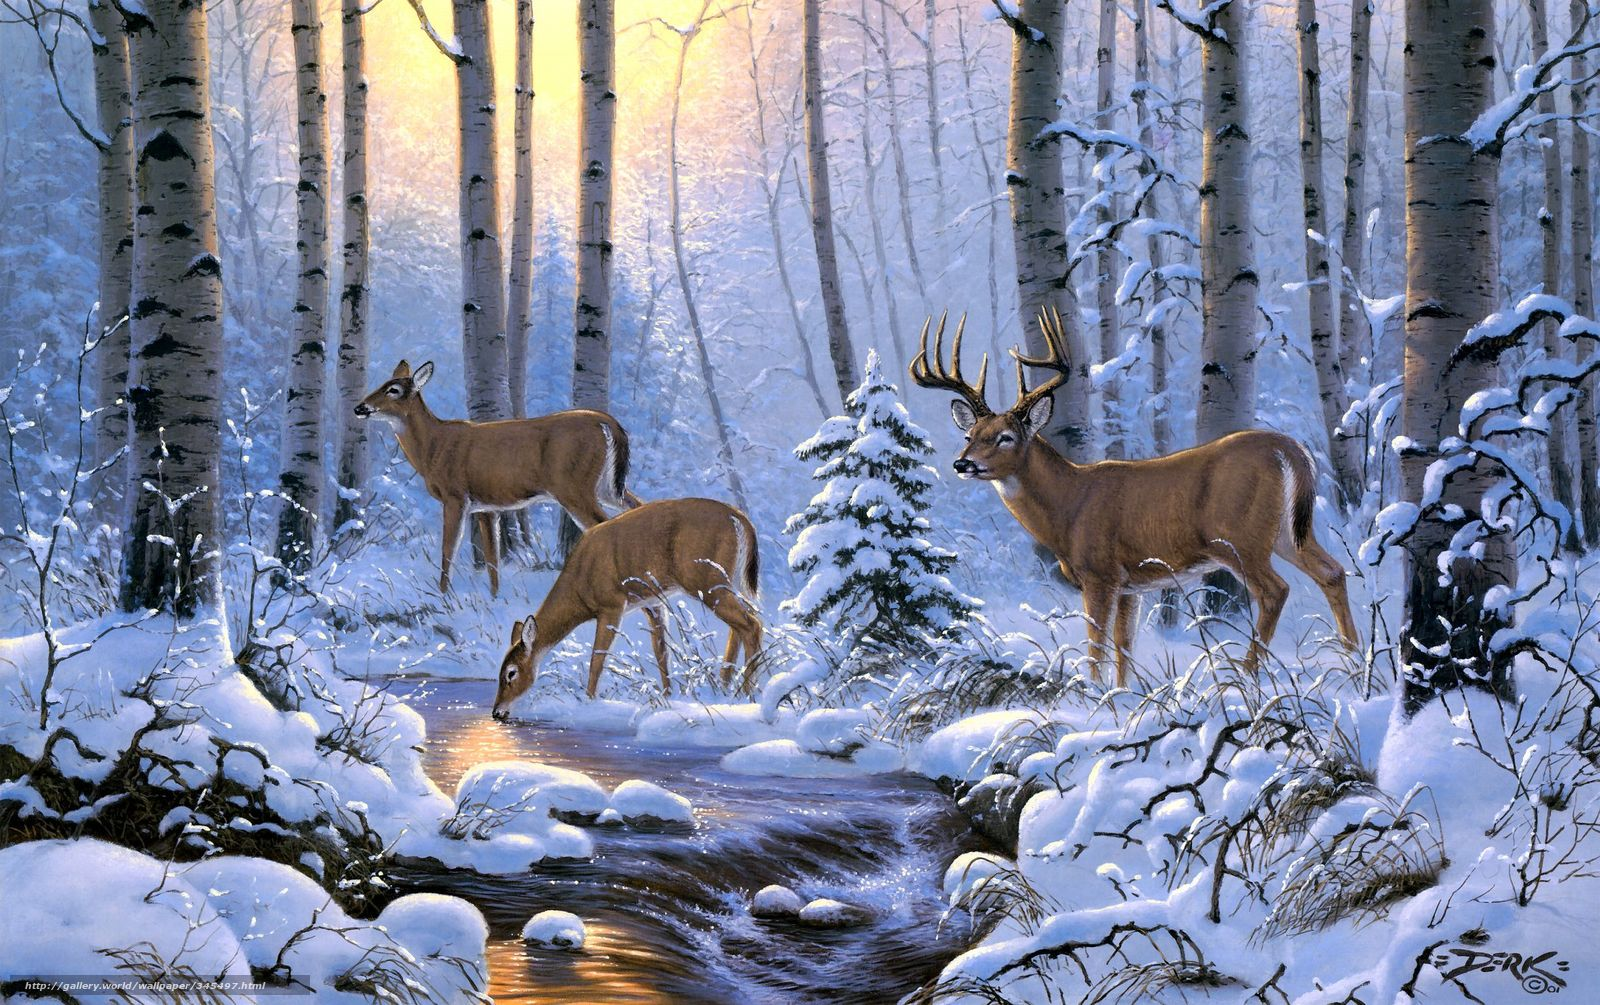 wallpaper derk hansen deer Winter forest desktop wallpaper 1600x1005